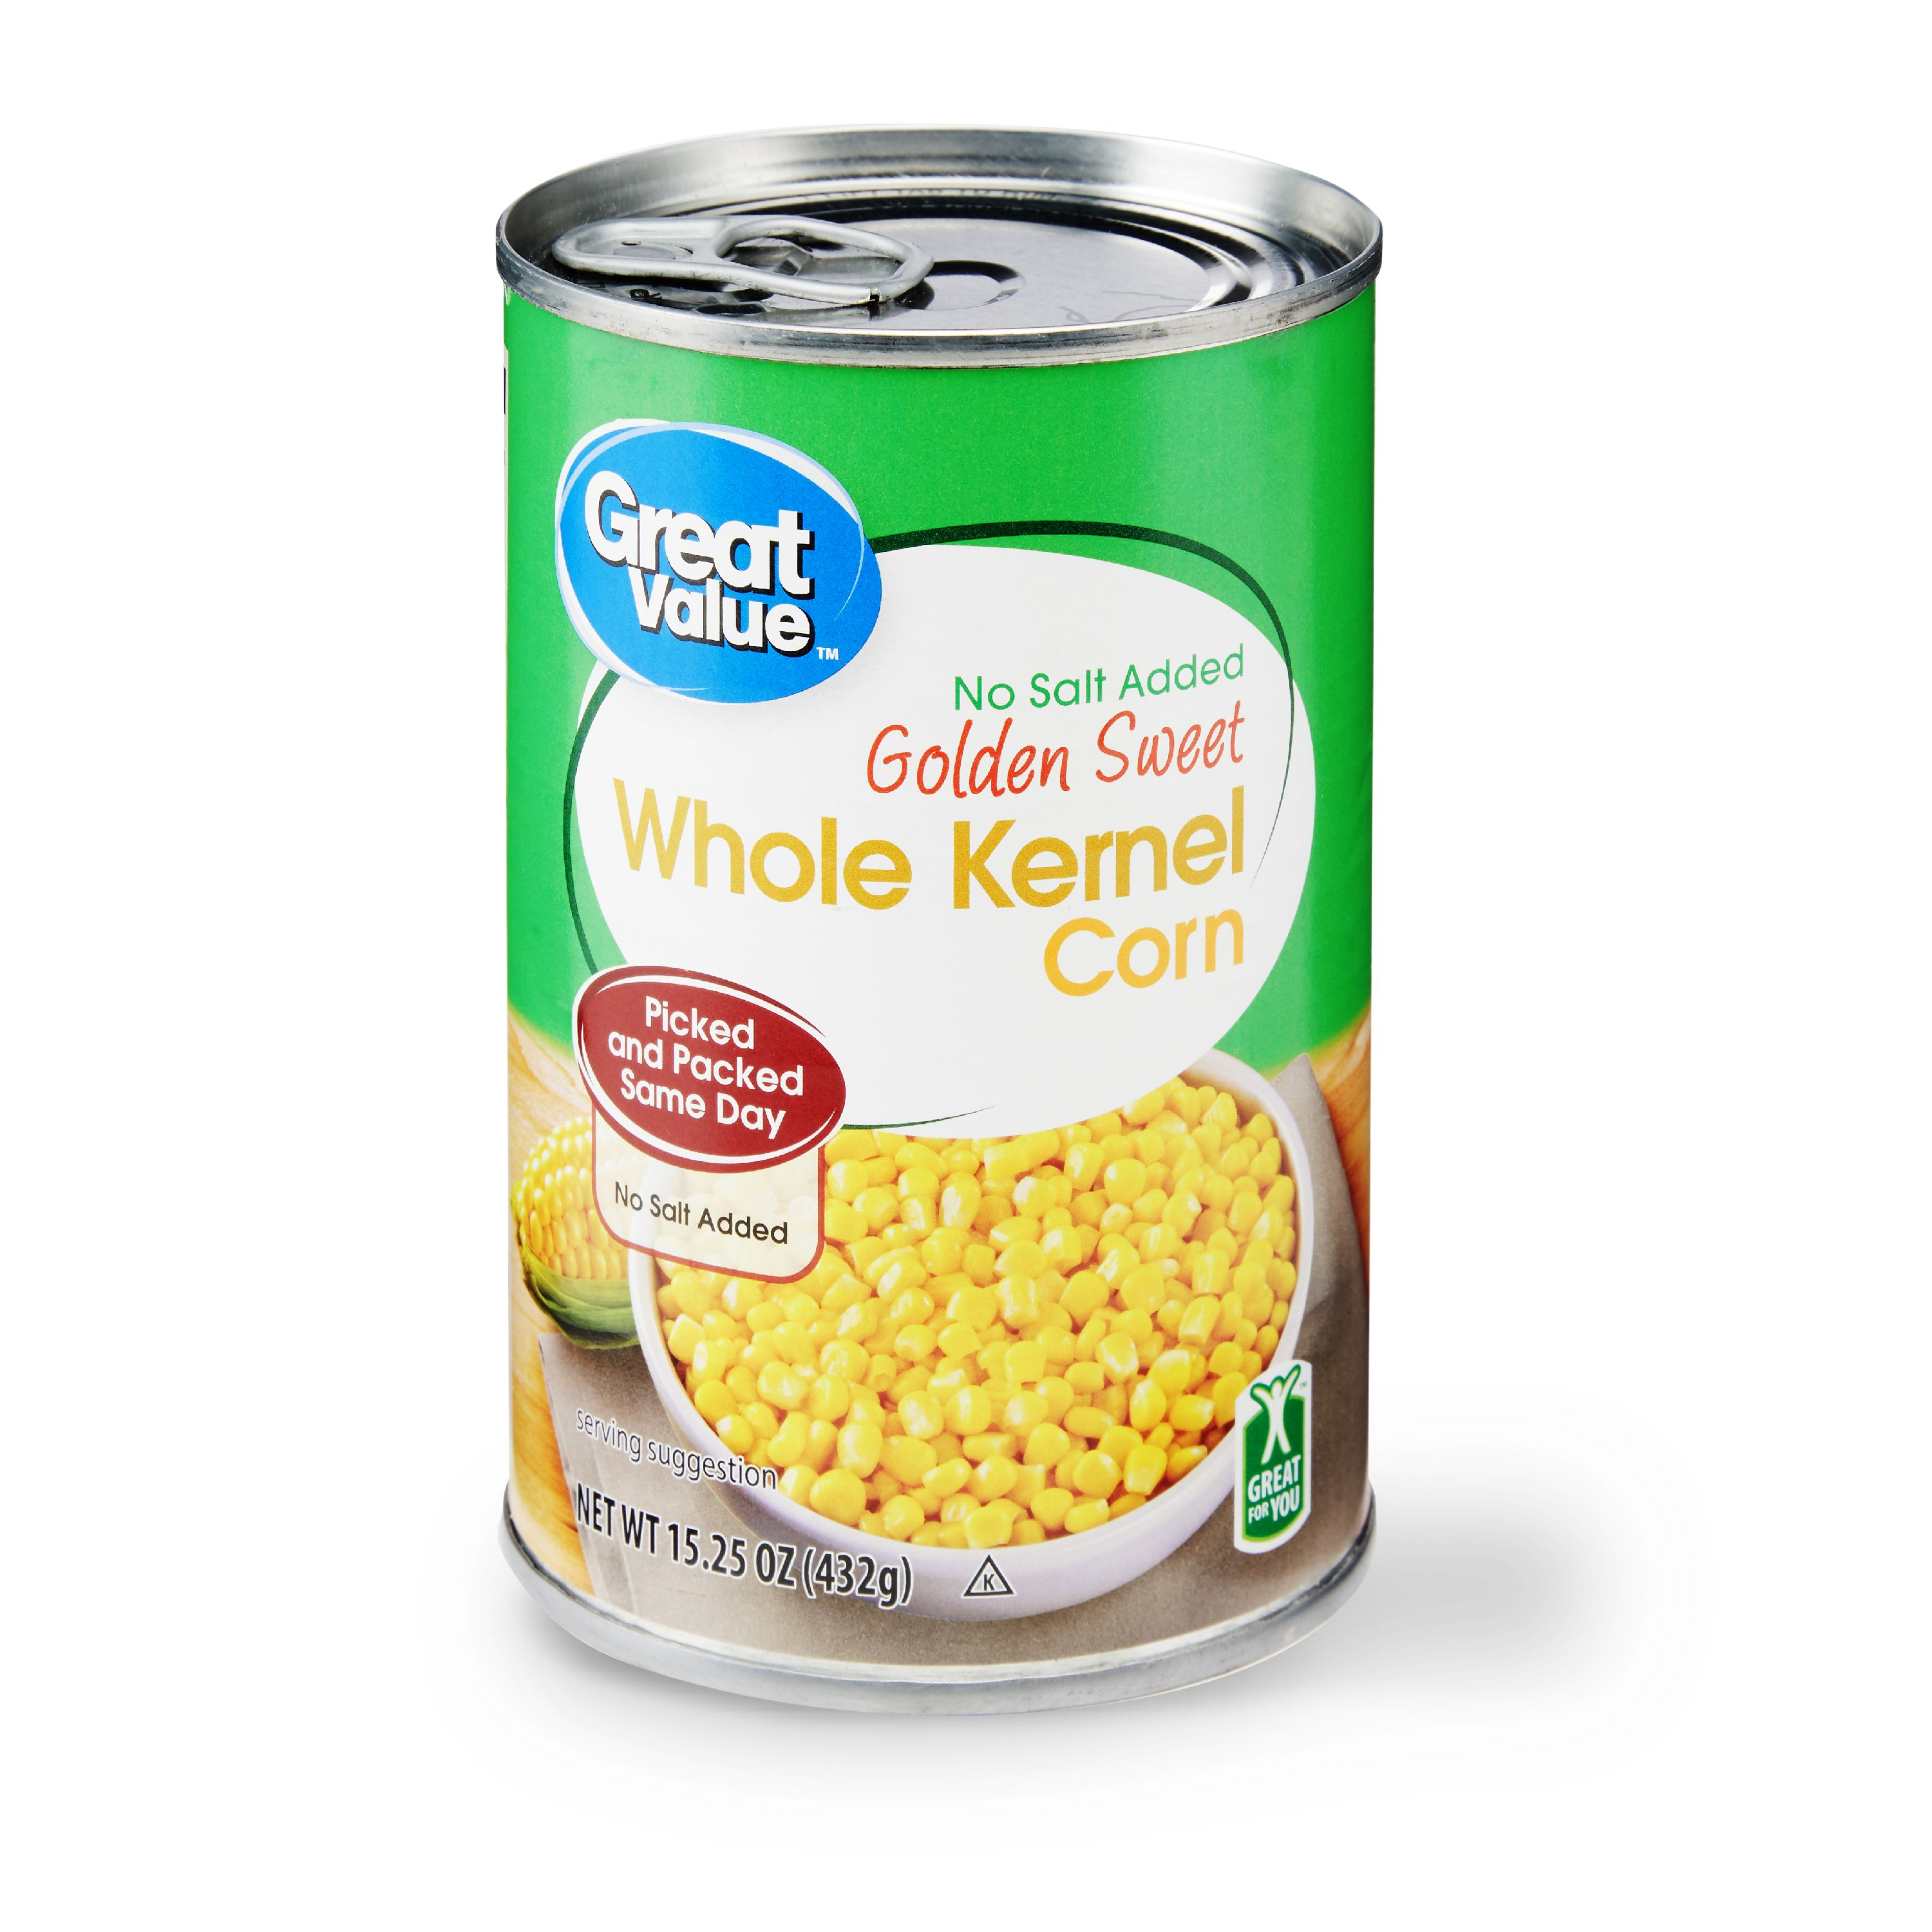 Great Value No Salt Added Golden Sweet Whole Kernel Corn, 15.25 oz